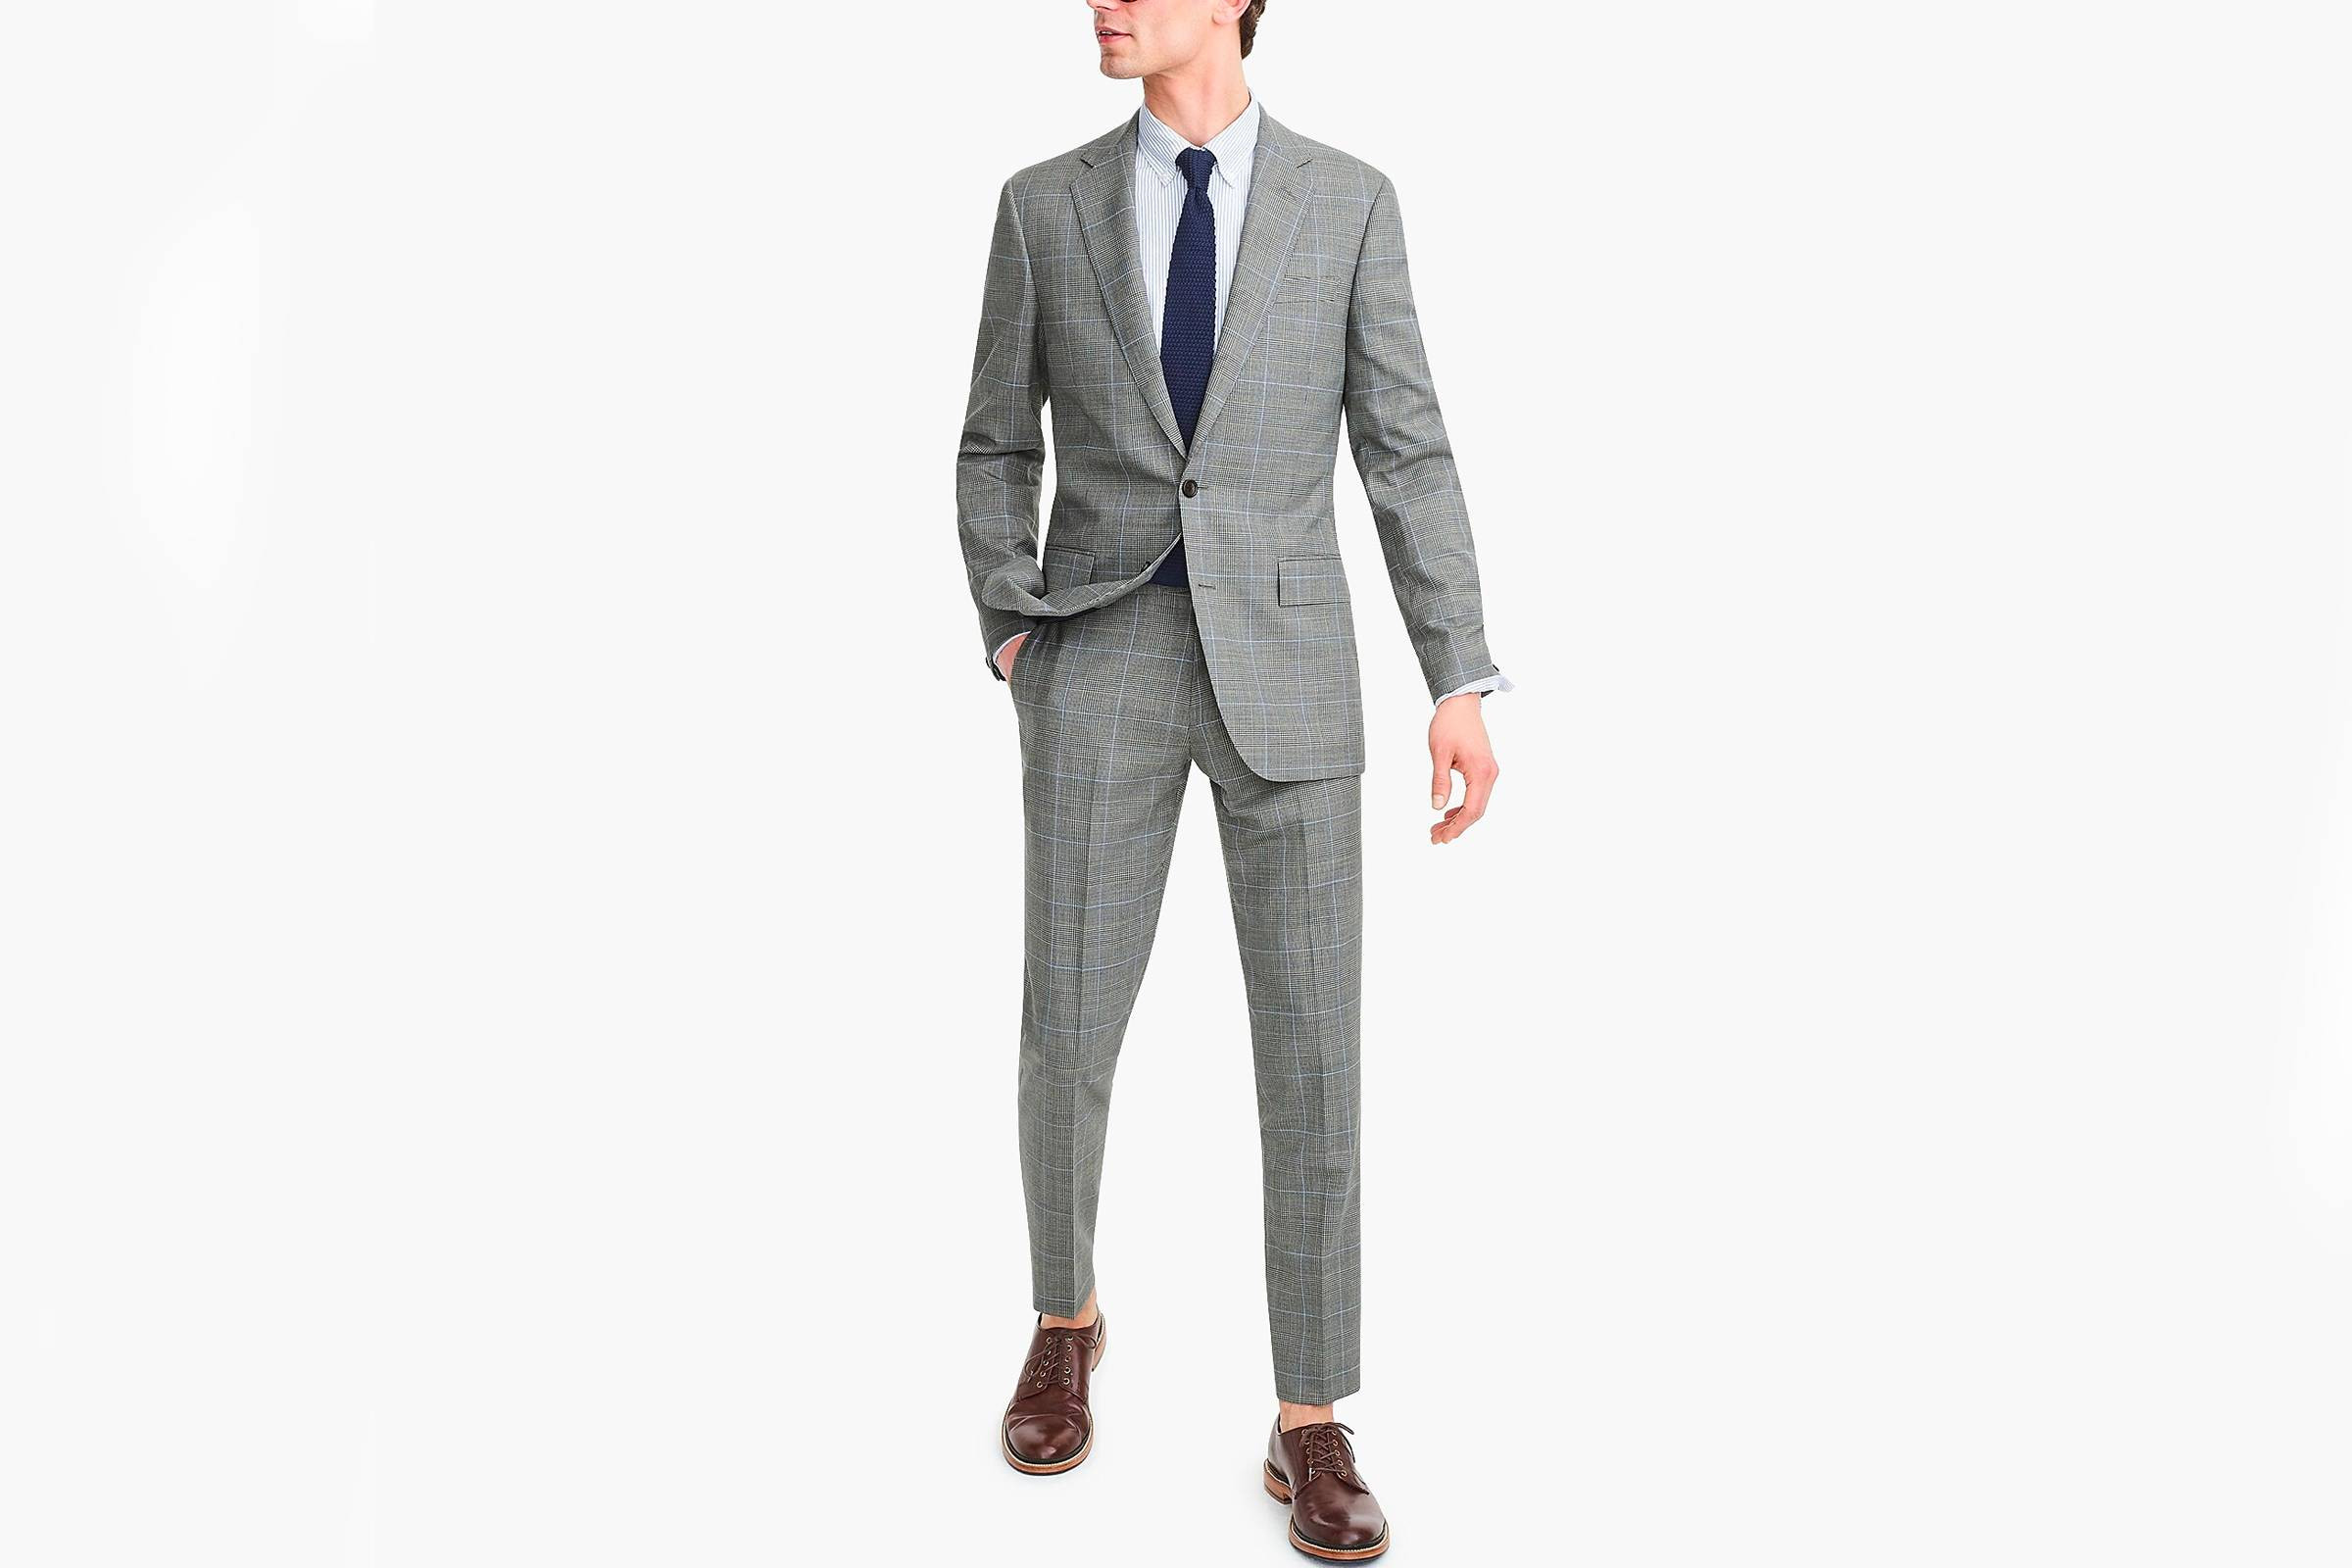 Types of Suits: Patterned Check Suit